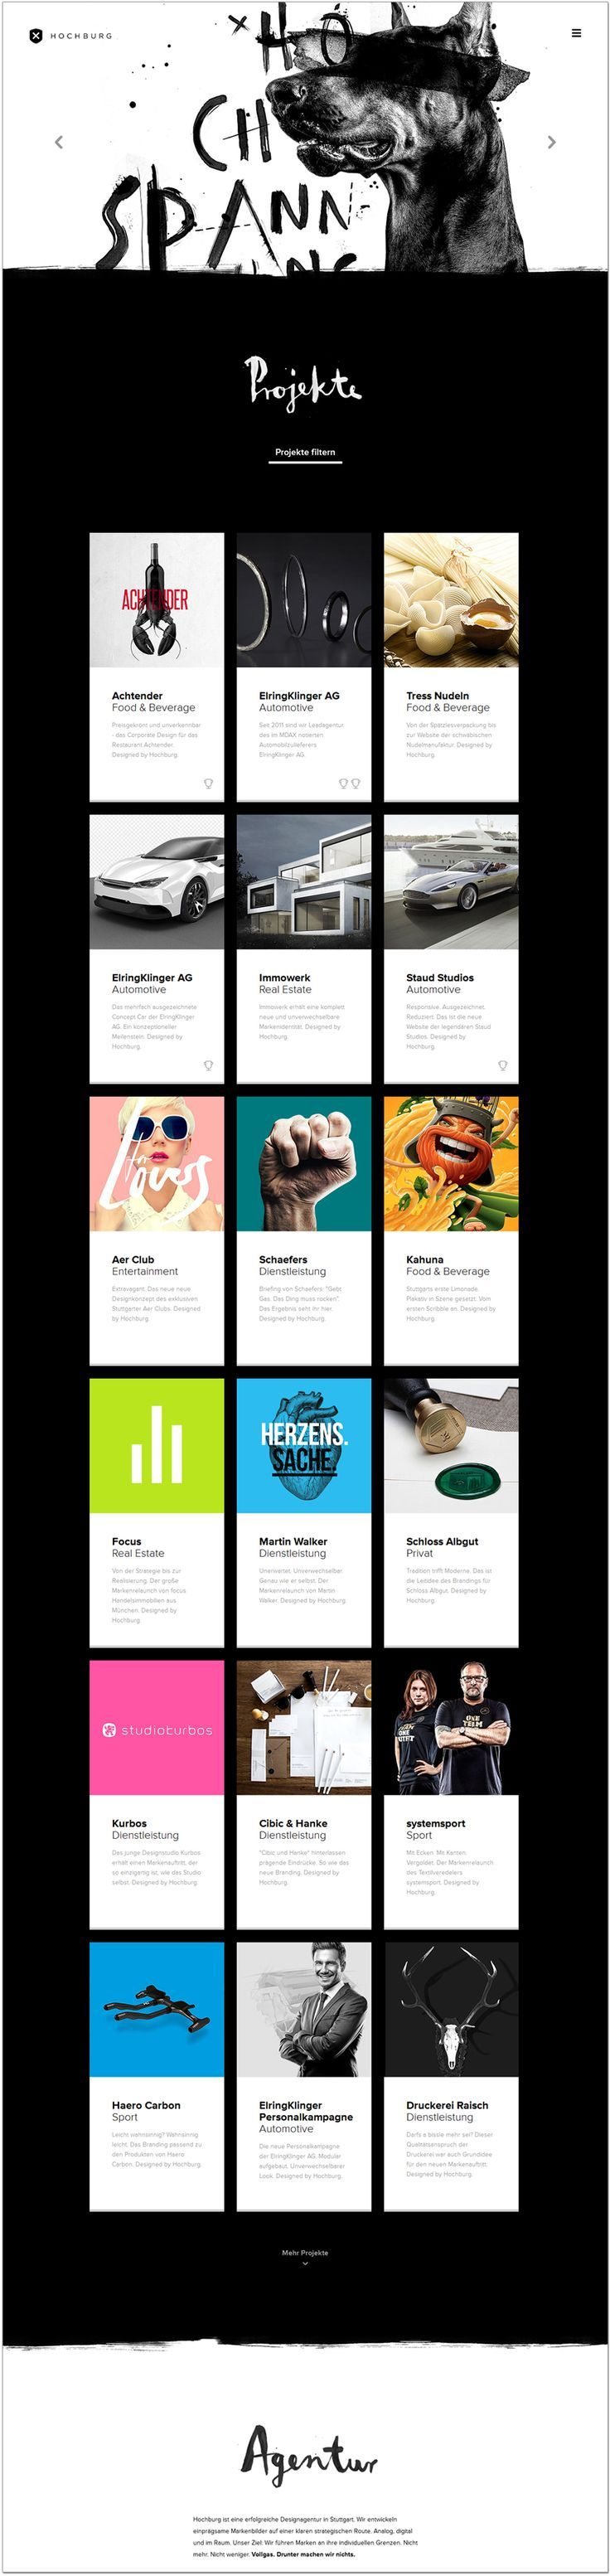 Modern B&W Grid Website Design Collection. = = = FREE CONSULTATION! Get similar web design service @ http://www.smallstereo.com